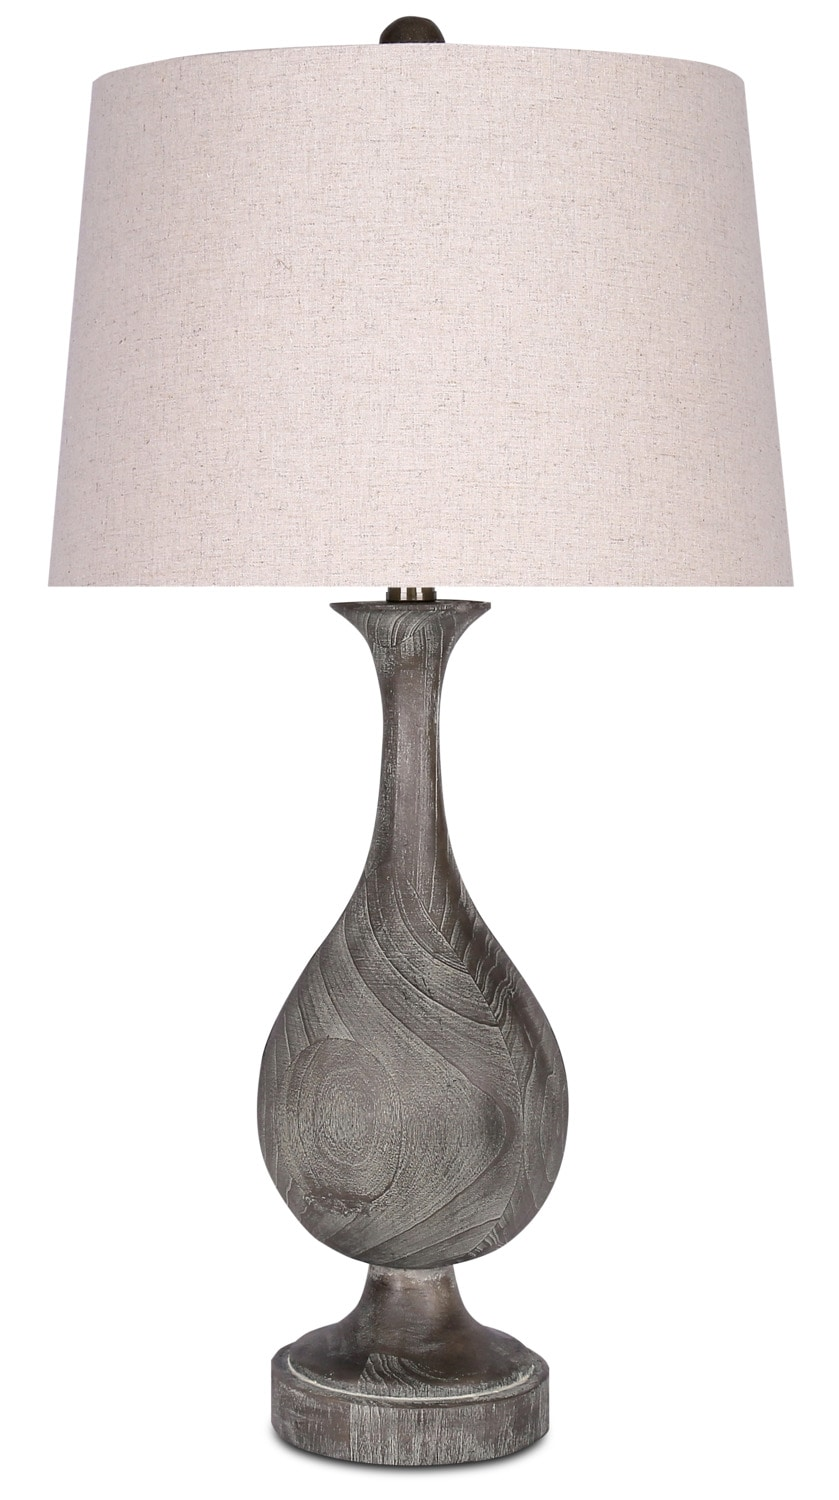 Acid Dusty Wood Resin Table Lamp with Linen Shade